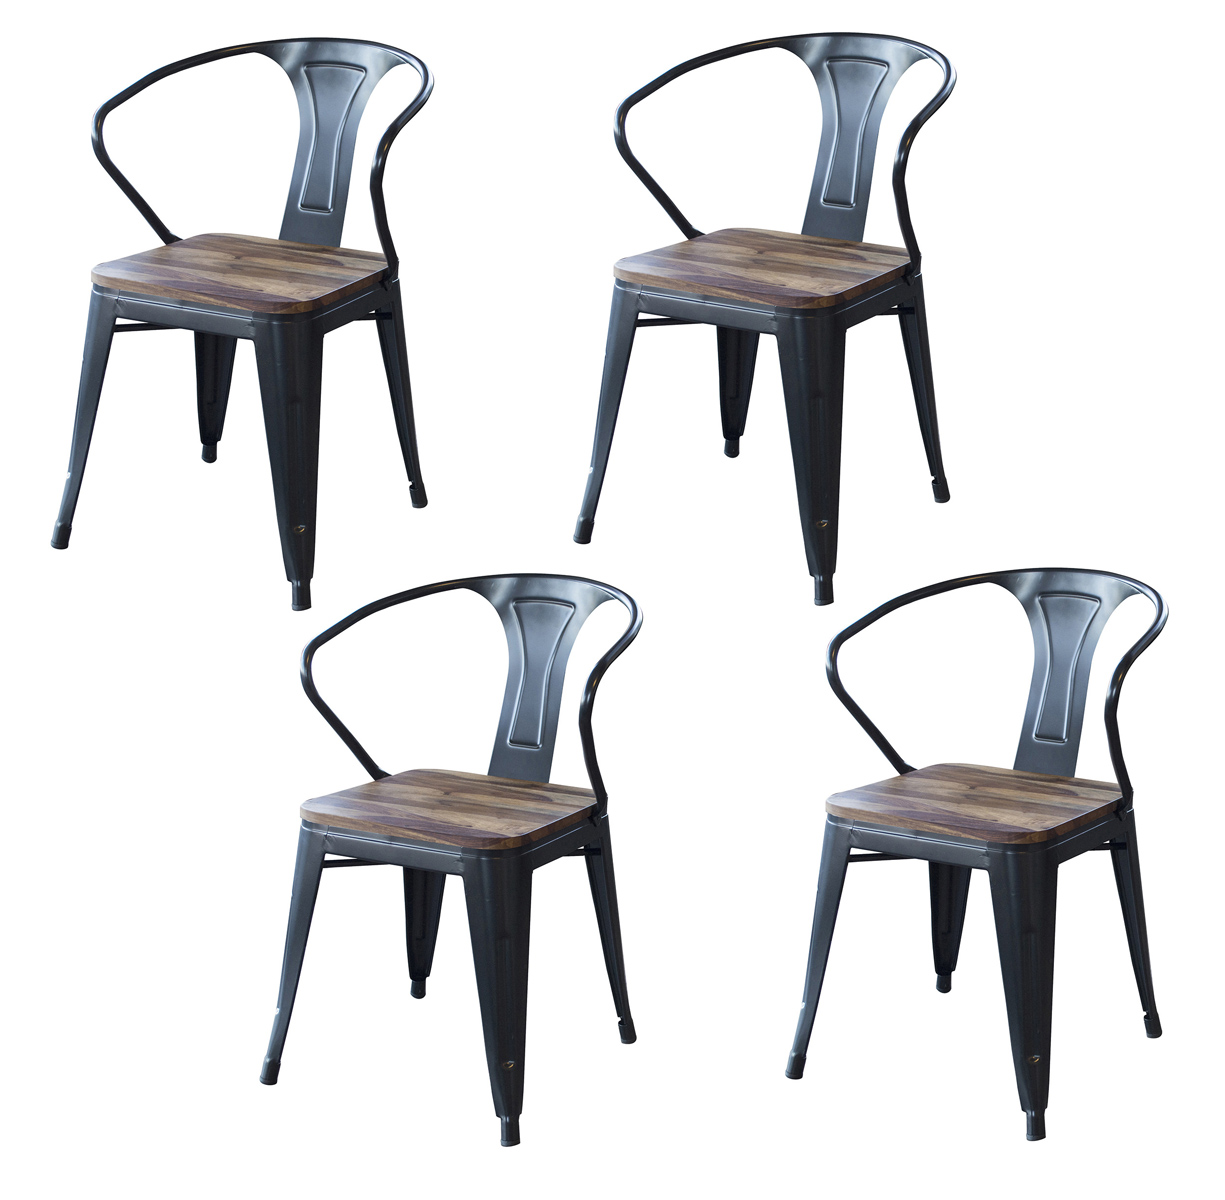 4 Piece Dining Chairs Set with Rosewood Top and Metal Legs